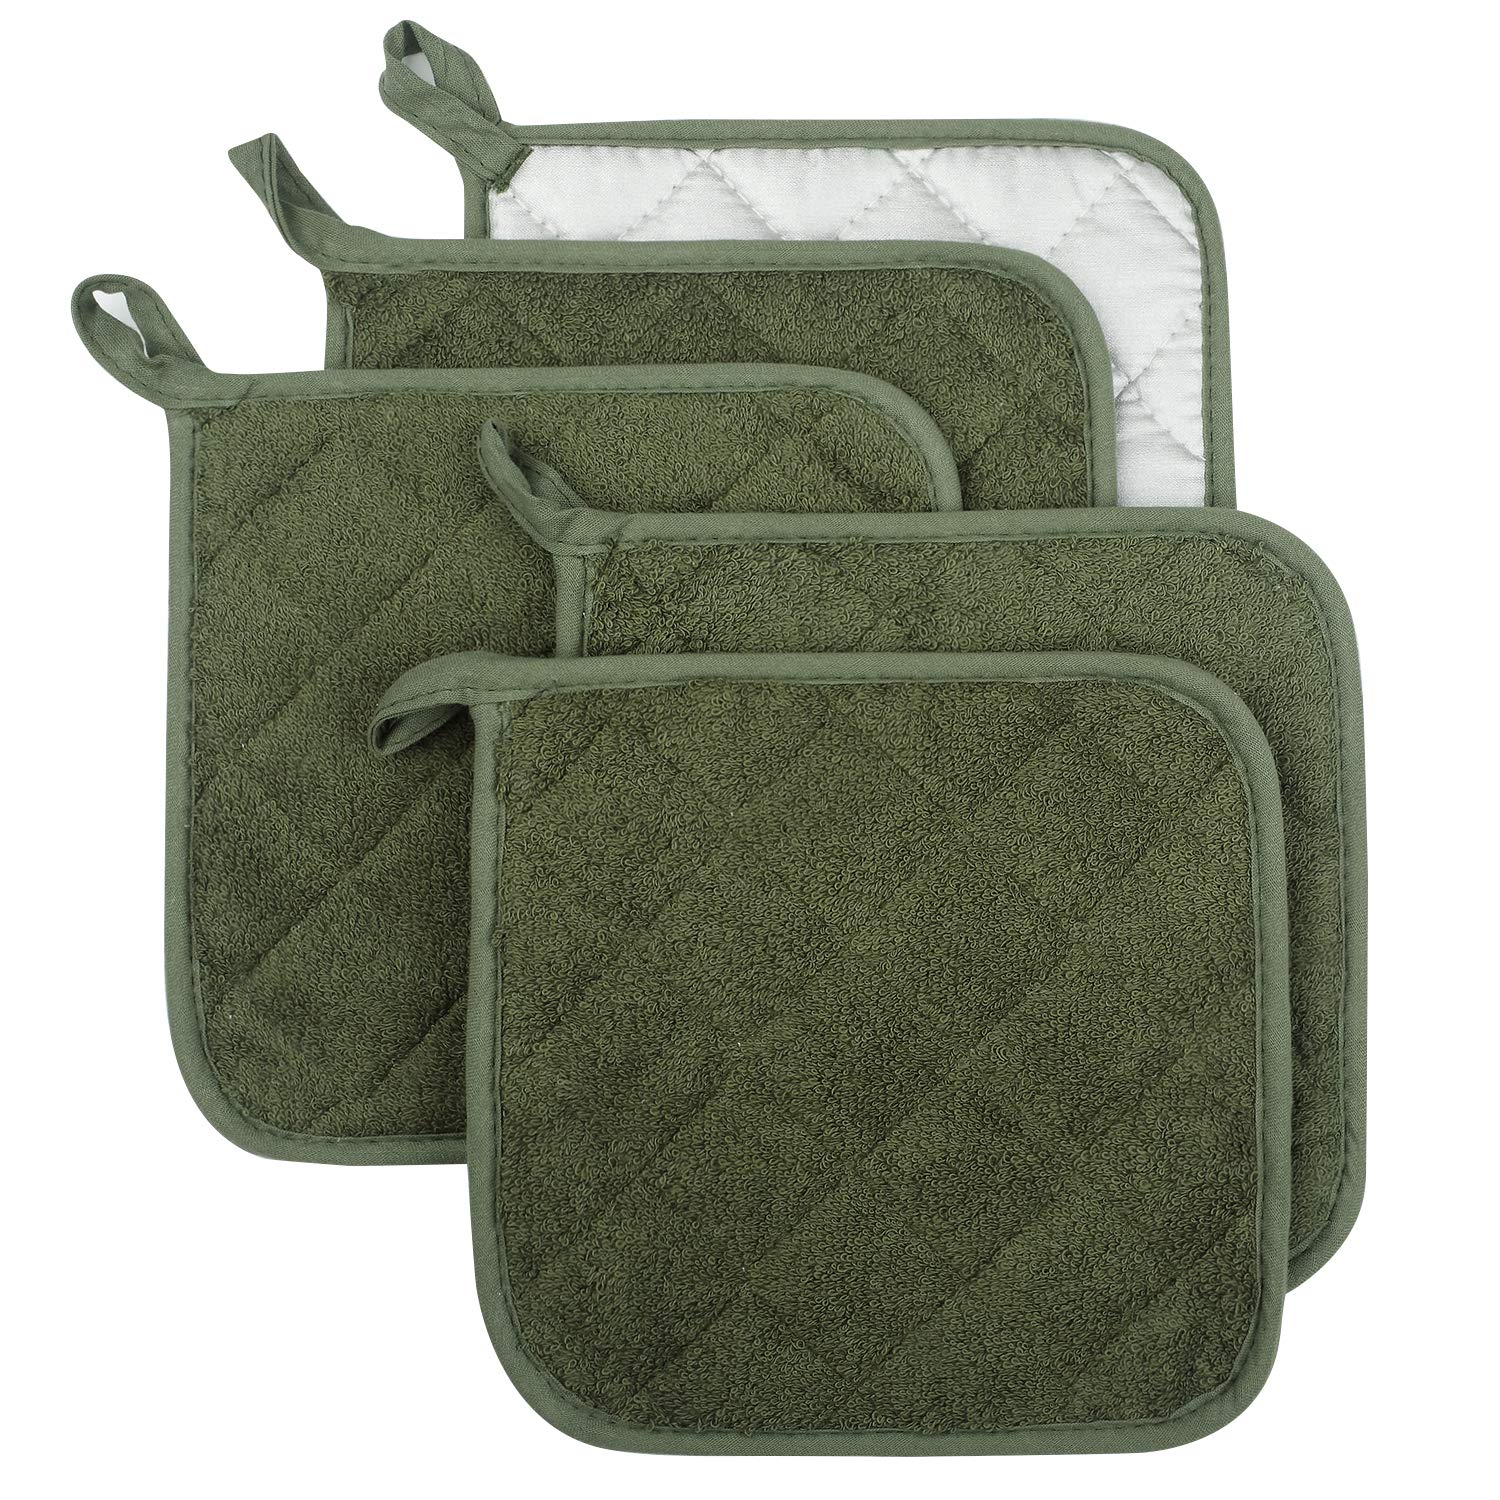 Lifaith 100% Cotton Kitchen Everyday Basic Terry Pot Holder Heat Resistant Coaster Potholder for Cooking and Baking Set of 5 Olive Green